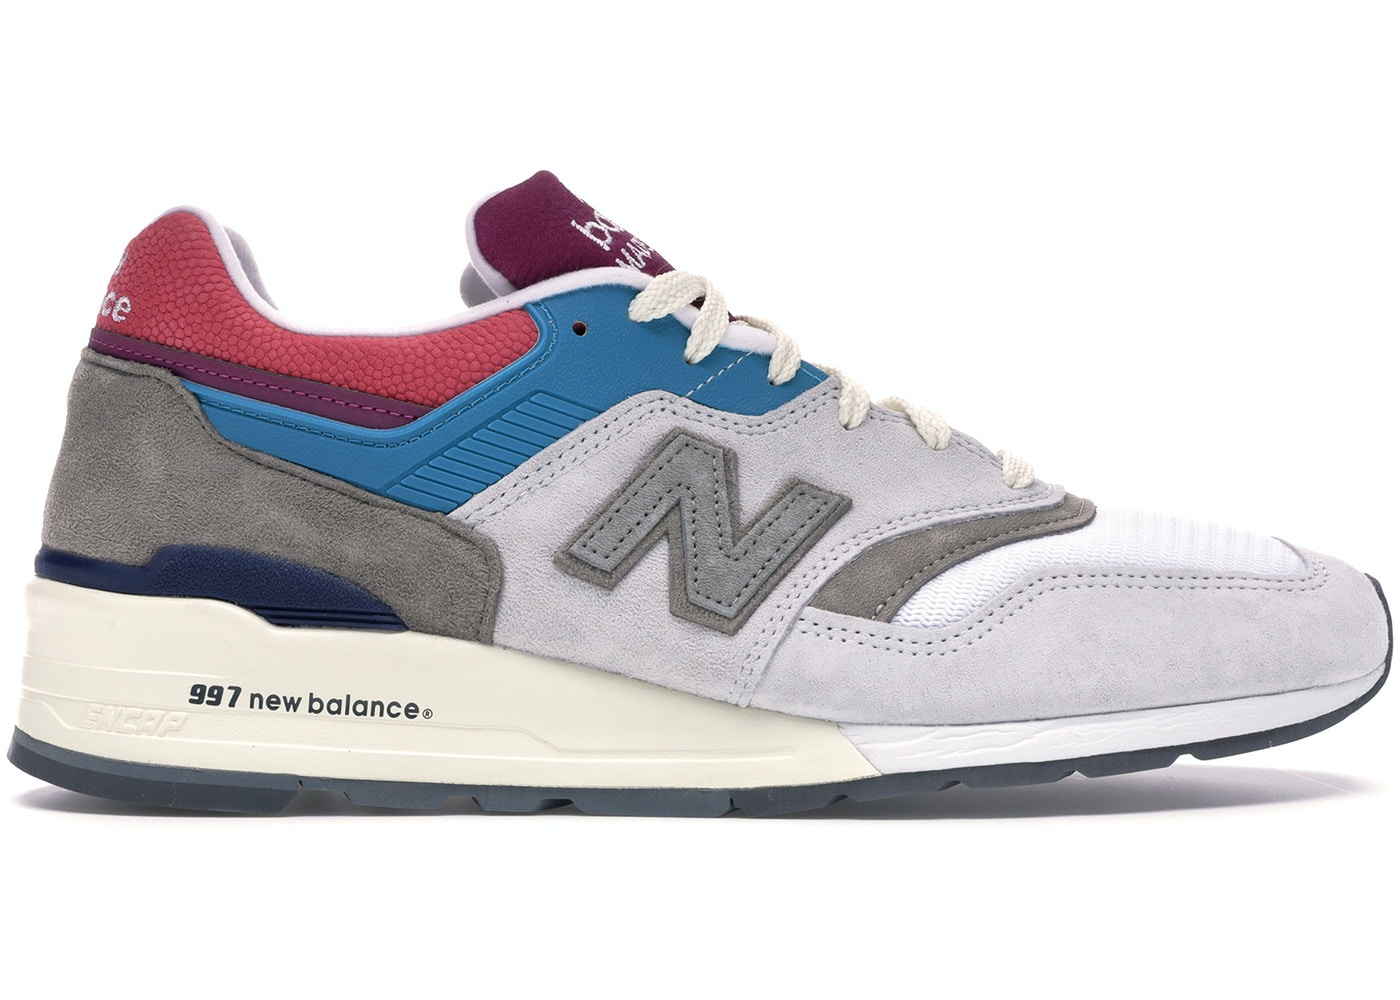 d9f827a4 New Balance 997 Aime Leon Dore (Pink Tongue) - Sneakers